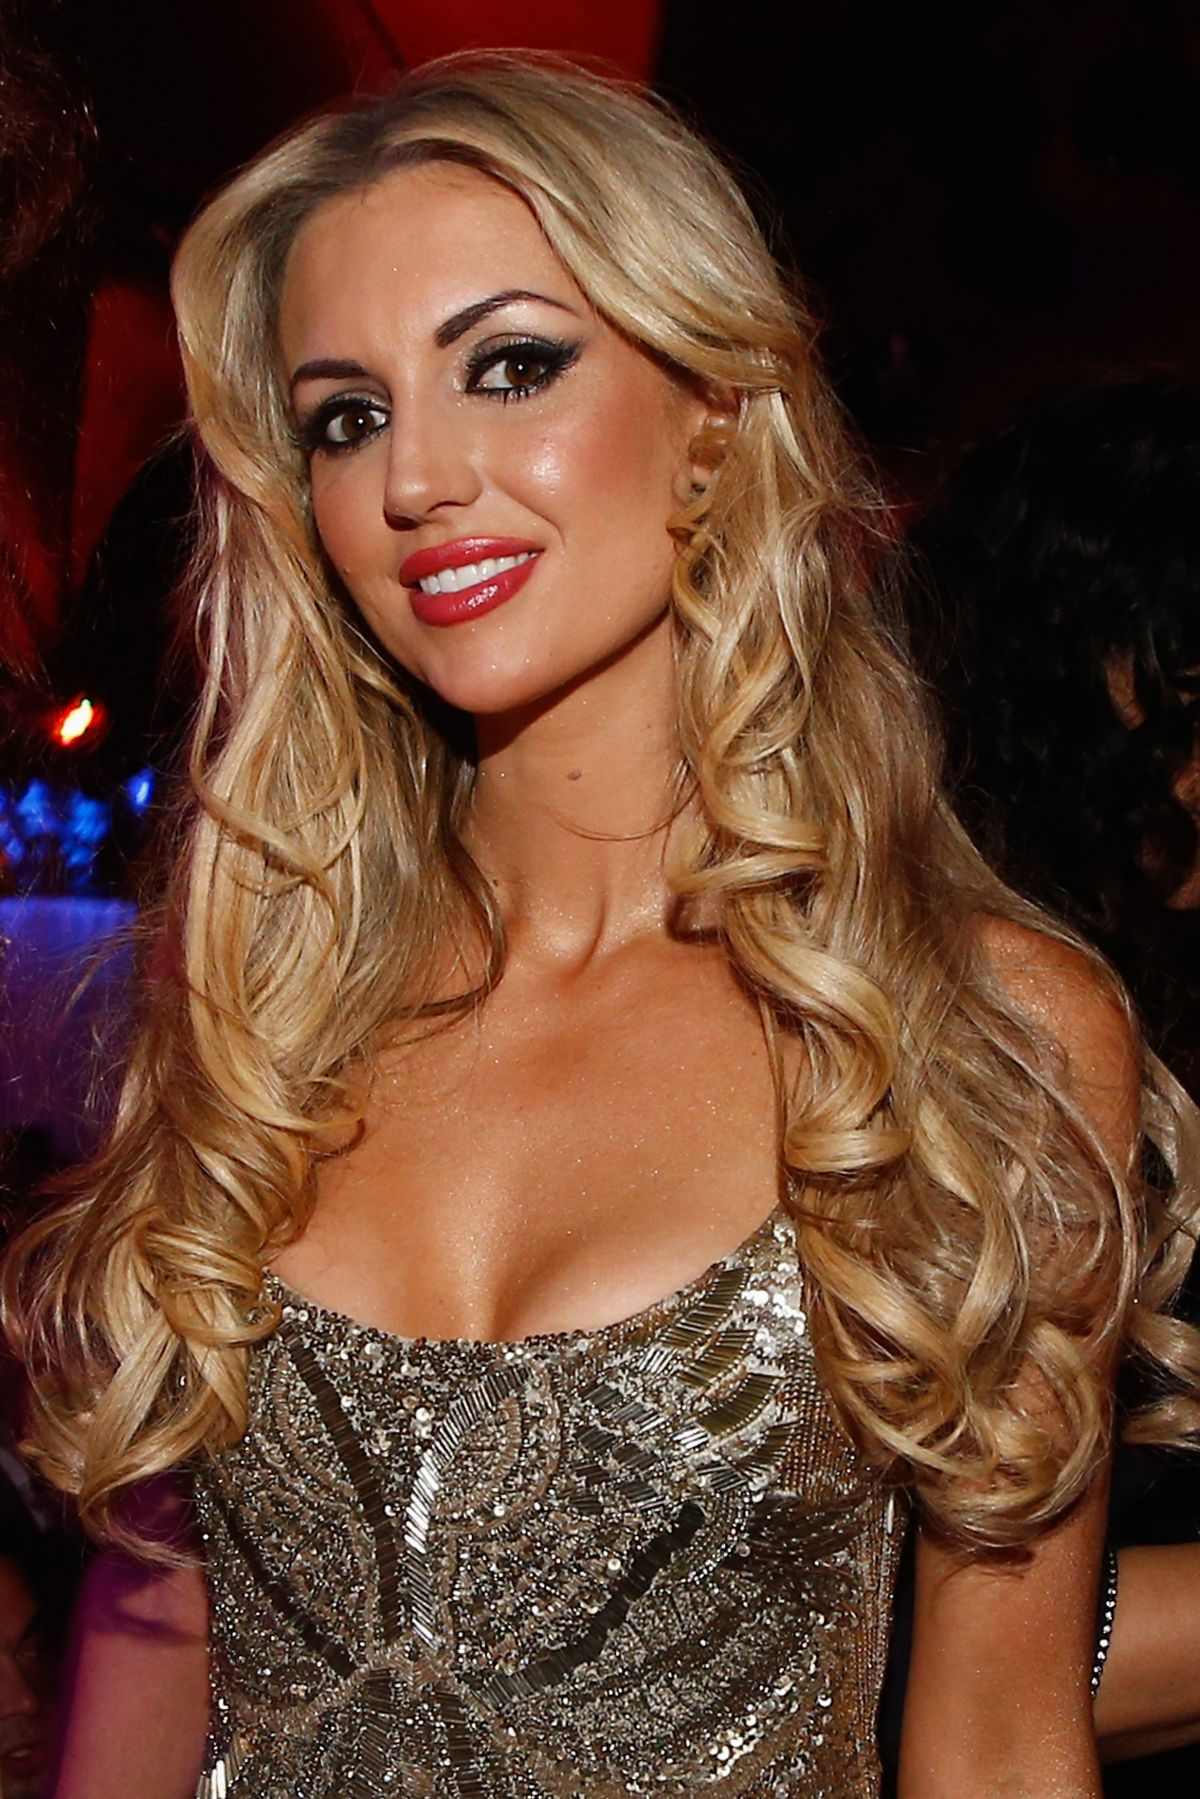 Rosanna davison alchetron the free social encyclopedia rosanna davison rosanna davison free wallpapers amp background images thecheapjerseys Images